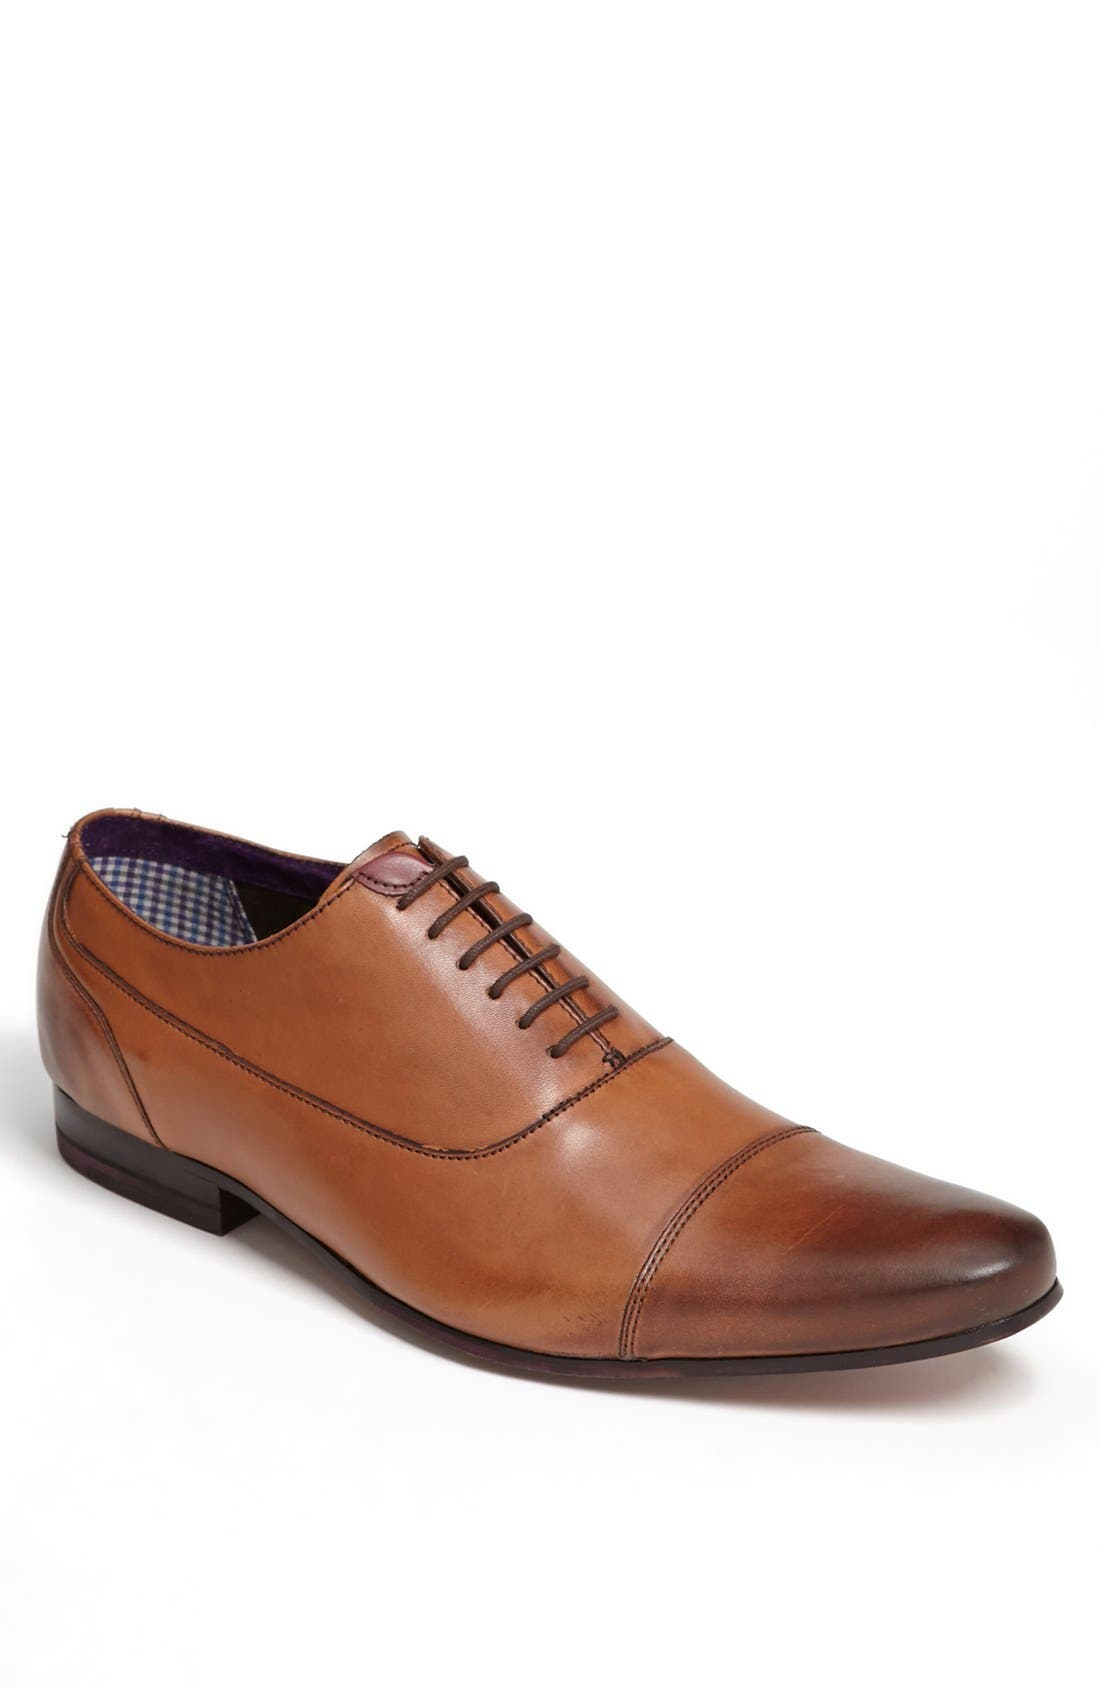 Alternate Image 1 Selected - Ted Baker London 'Churen 3' Cap Toe Oxford